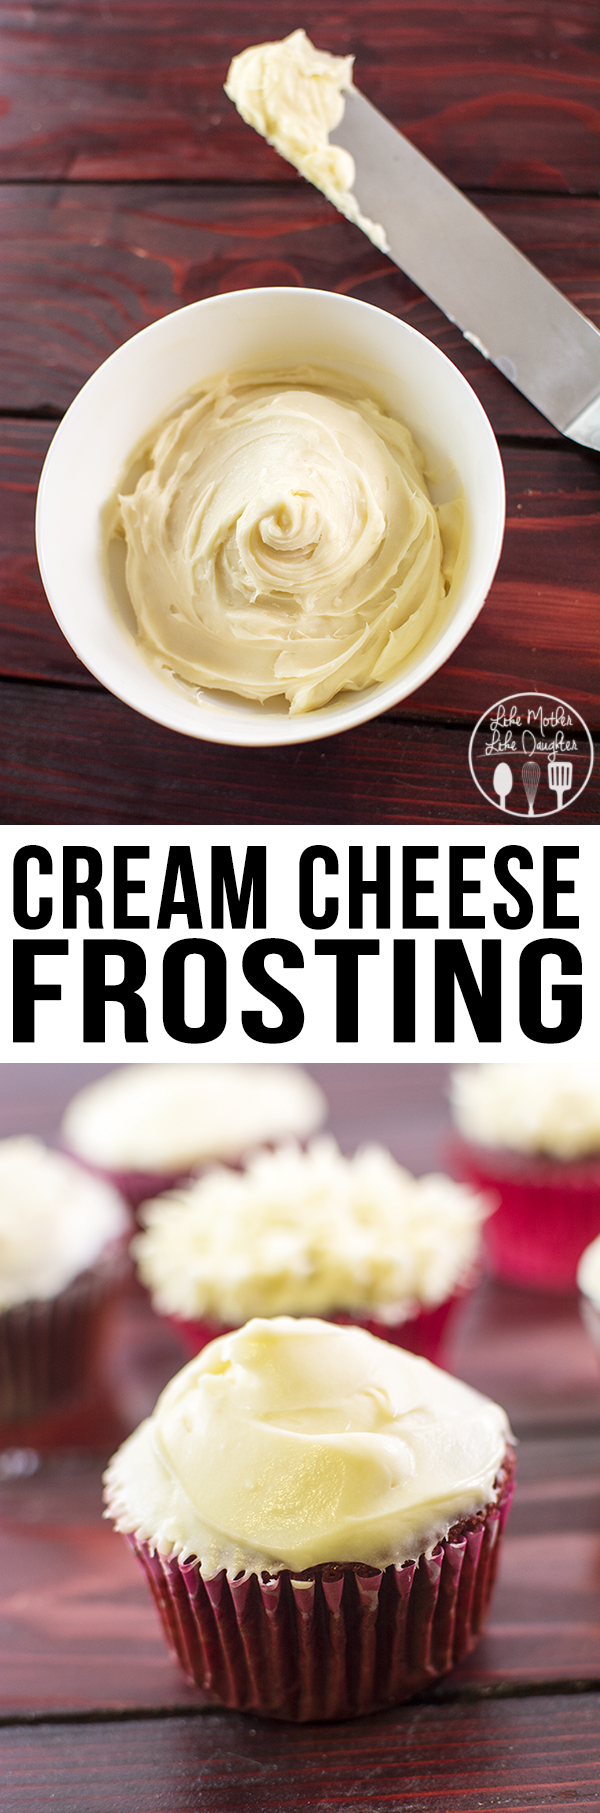 Cream Cheese Frosting that is so smooth, tangy and sweet, perfect for any cakes, cookies, cinnamon rolls, or to eat by the spoonful!